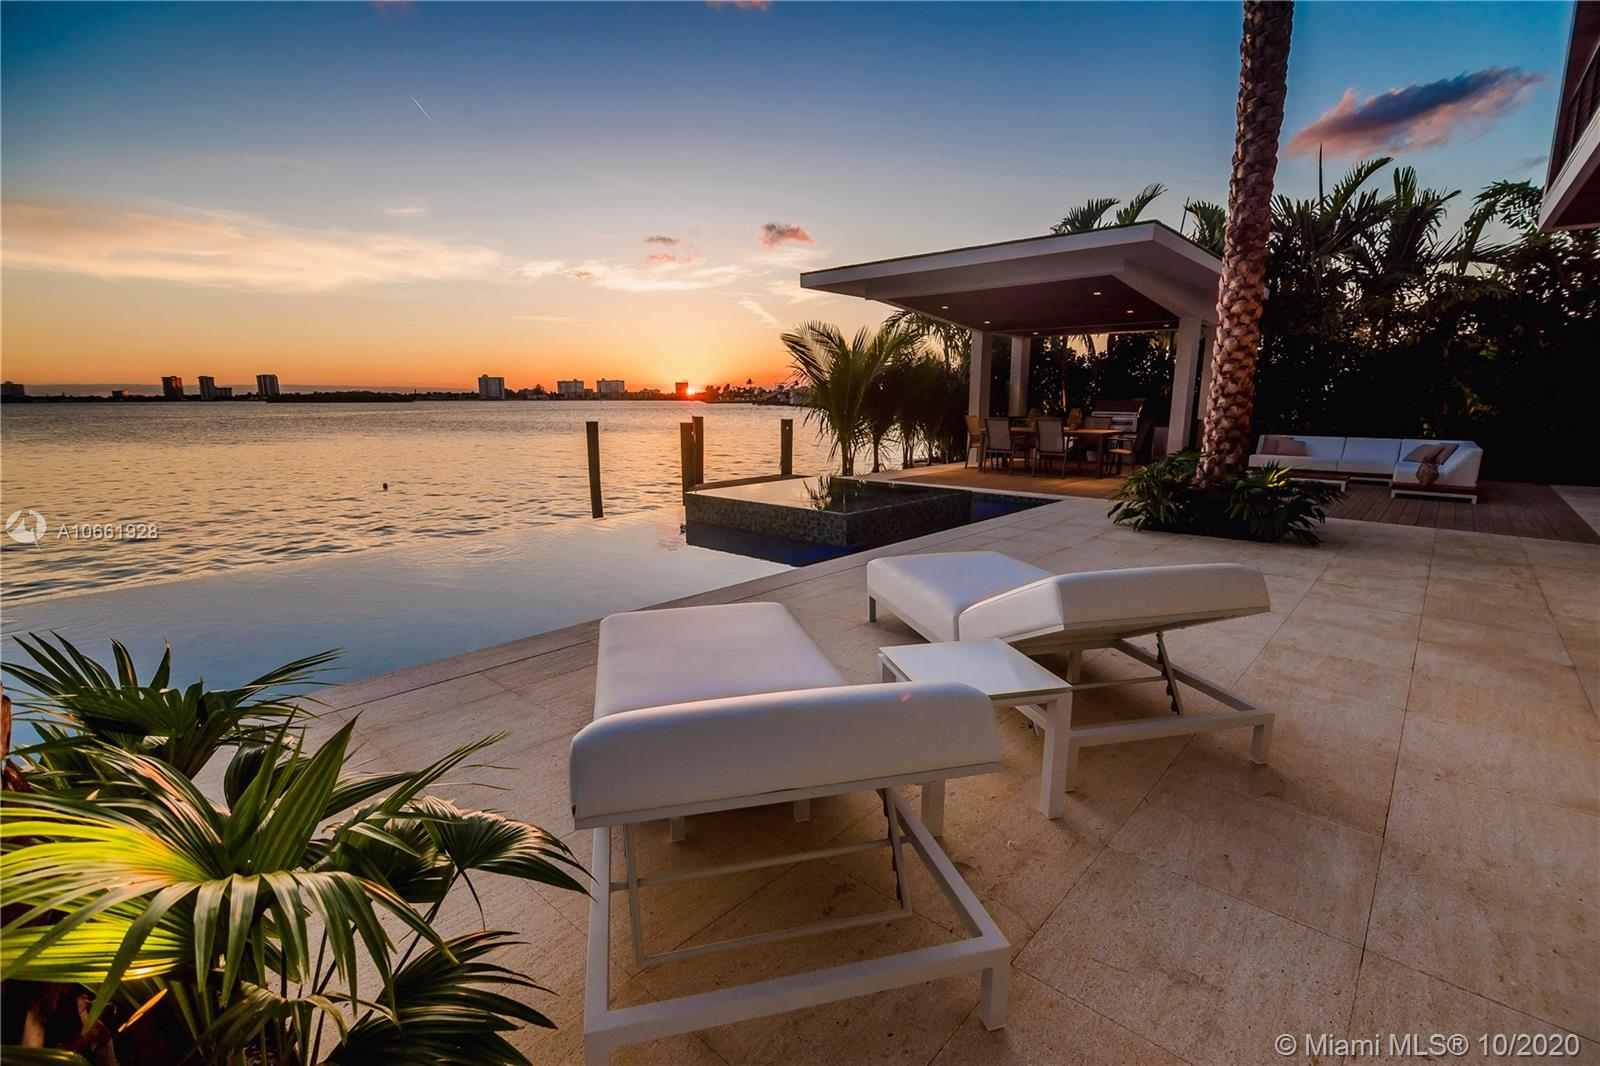 New dream waterfront mansion offering serene water & Indian Creek Golf Course views! Inside, dramatic contemporary design with expansive living areas enclosed by oversized glass walls, interior garden, formal dining, chef's kitchen + a service kitchen, upper living area, sauna, & high-end finishes. Exceptional outdoors with an infinity pool, spa and summer kitchen – ideal for entertaining & dolphin sighting. Deluxe master with a marble bath, terrace, walk-in closet, & endless sunsets! Equipped with Lutron lighting & auto shades, 2-car garage with lift, lush landscape. Rooftop ready! Add the east adjacent vacant lot for $4.95M & enjoy 26,250 of land with 160 FT WF. Live minutes away to Bal Harbour shops! Created by the vision & dedication to perfection of Gamma Construction & CBDesign Team.